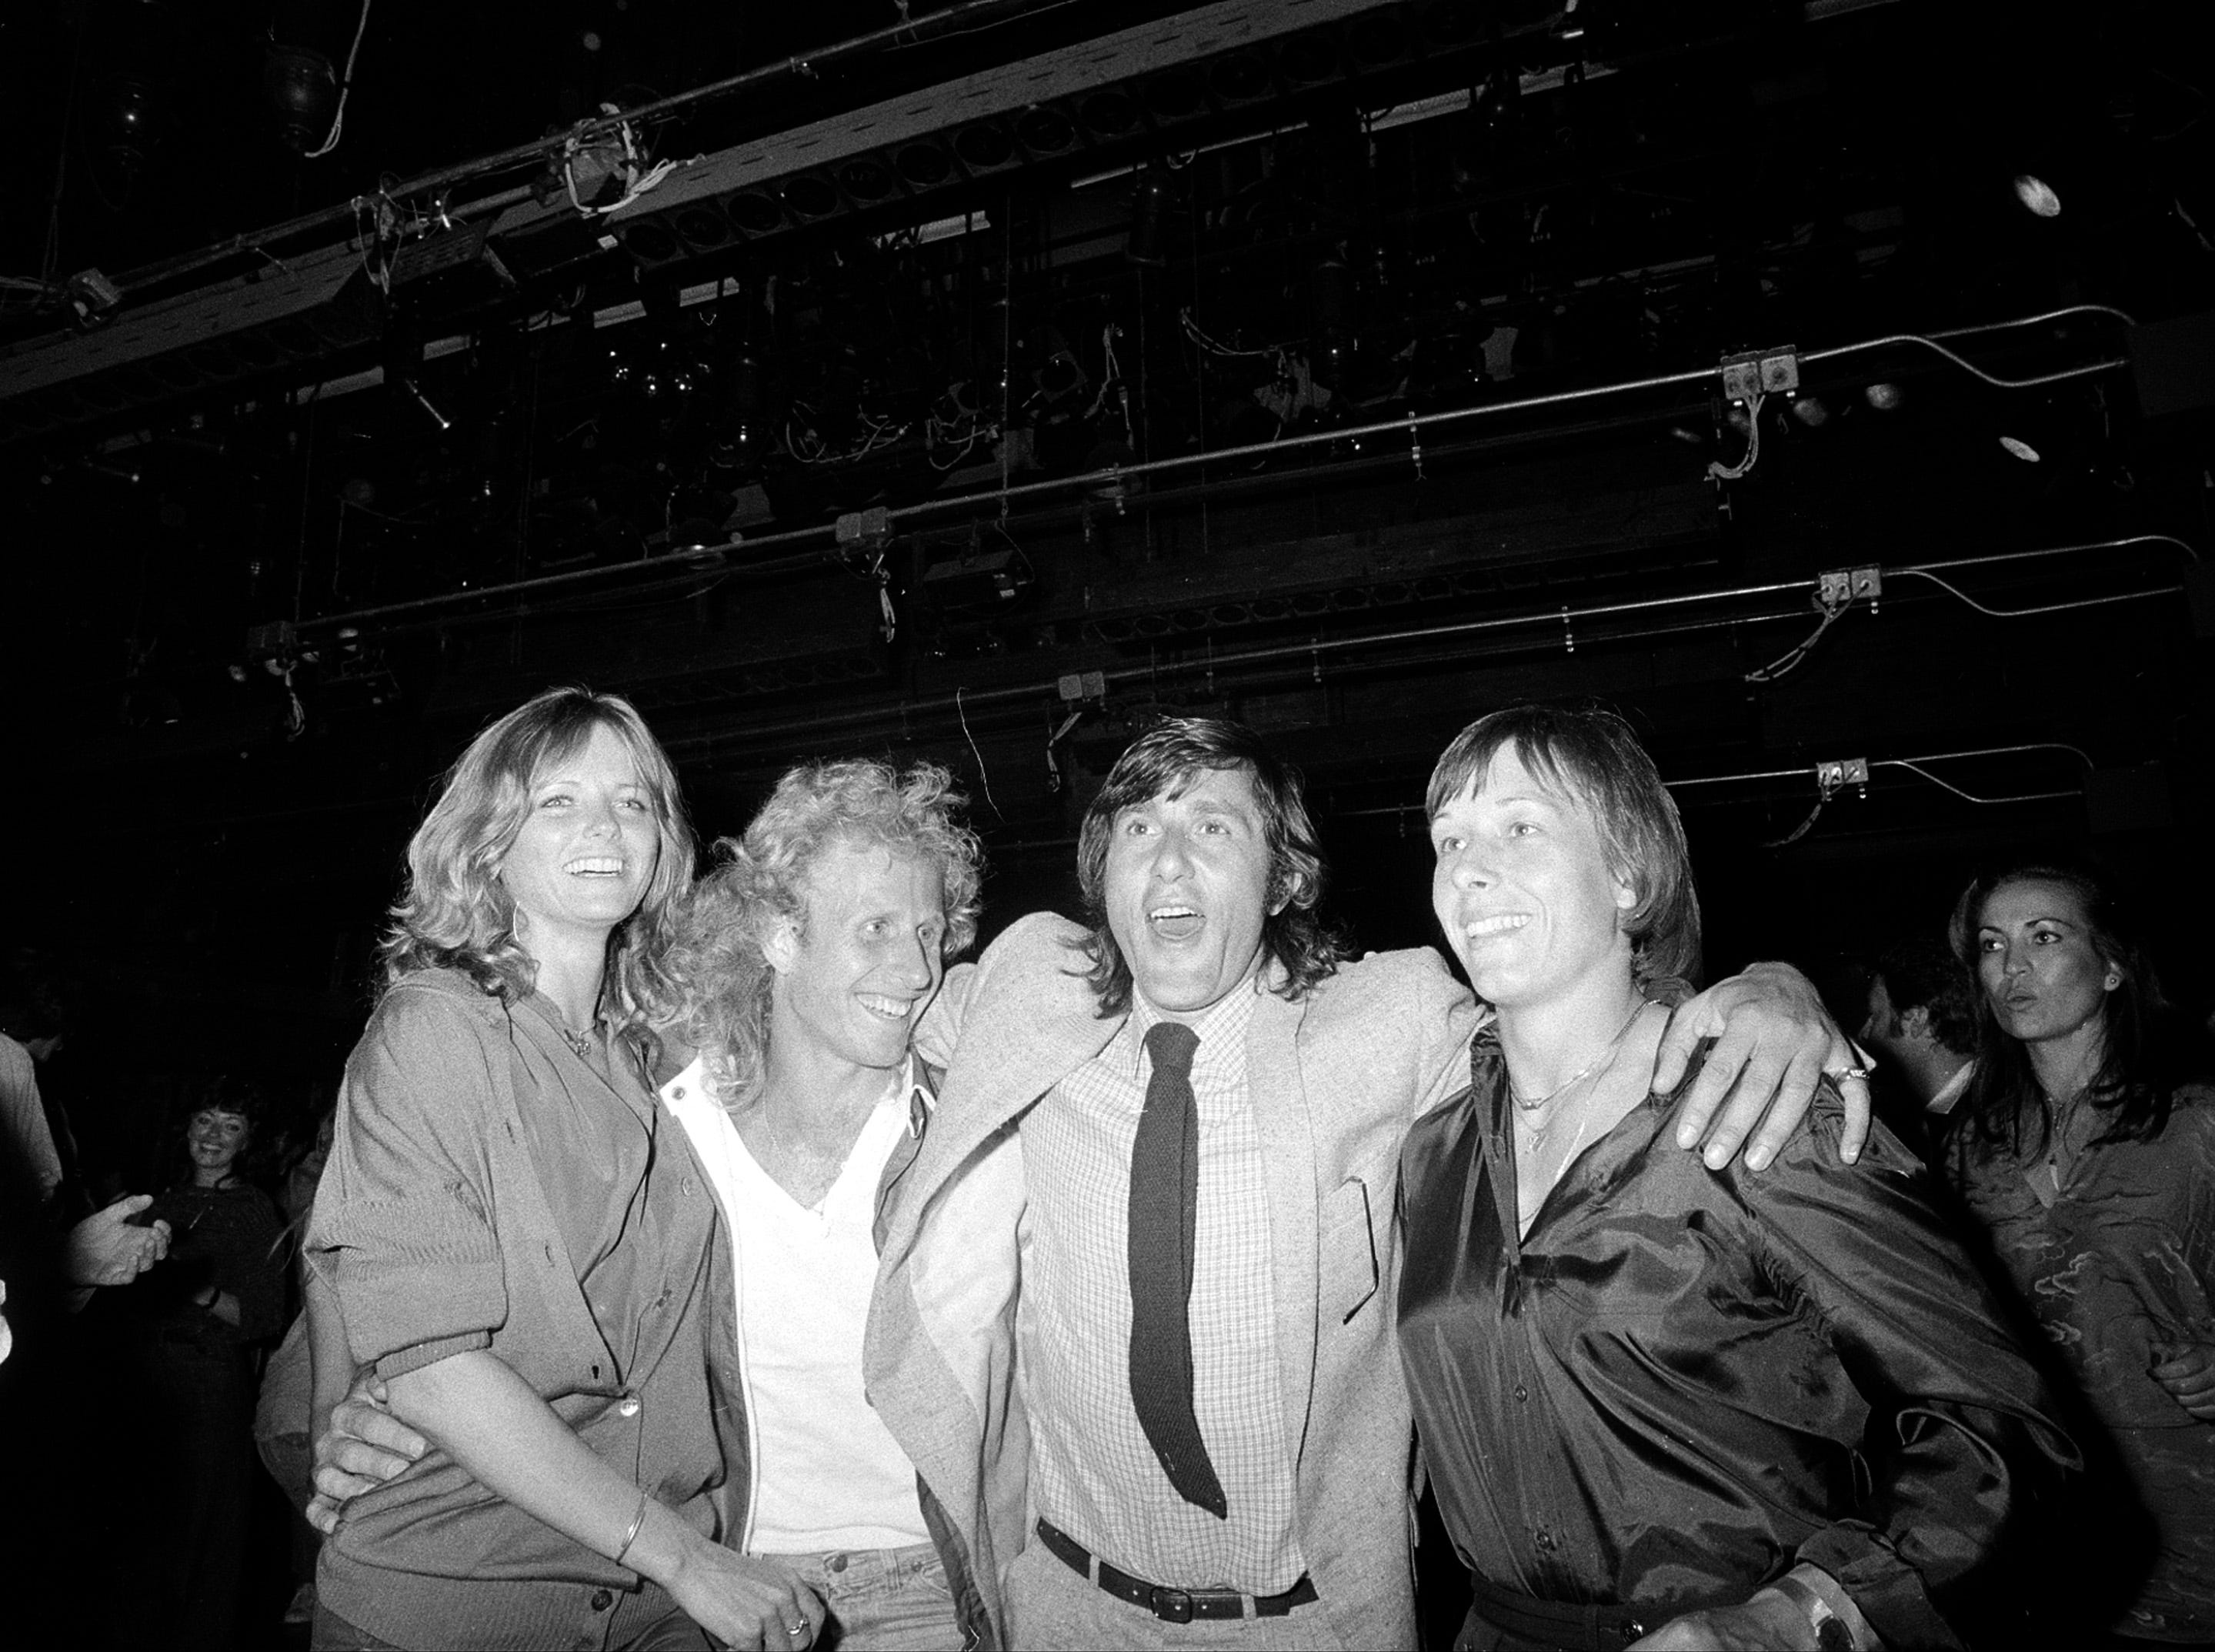 Fashion model Cheryl Tiegs, left, poses with tennis players Vitas Gerulaitis, second from left, Ilie Nastase, and Martina Navratilova at Studio 54 nightclub on Sept. 10, 1979.